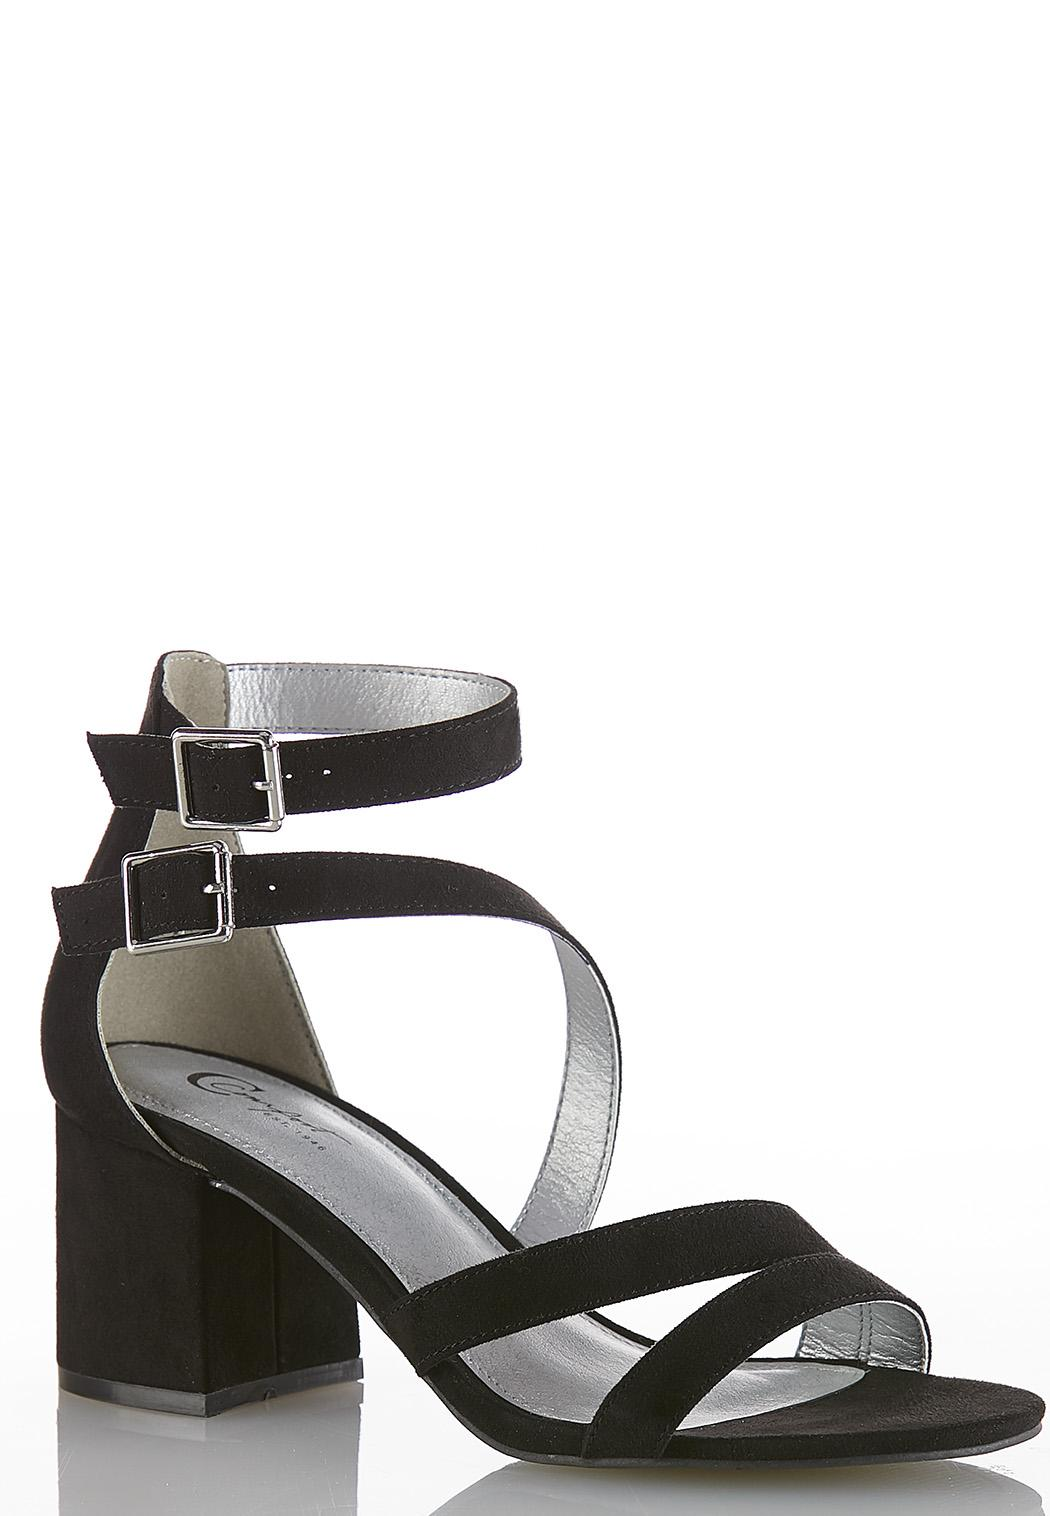 0520b896f Double Buckle Faux Suede Sandals Heels Cato Fashions